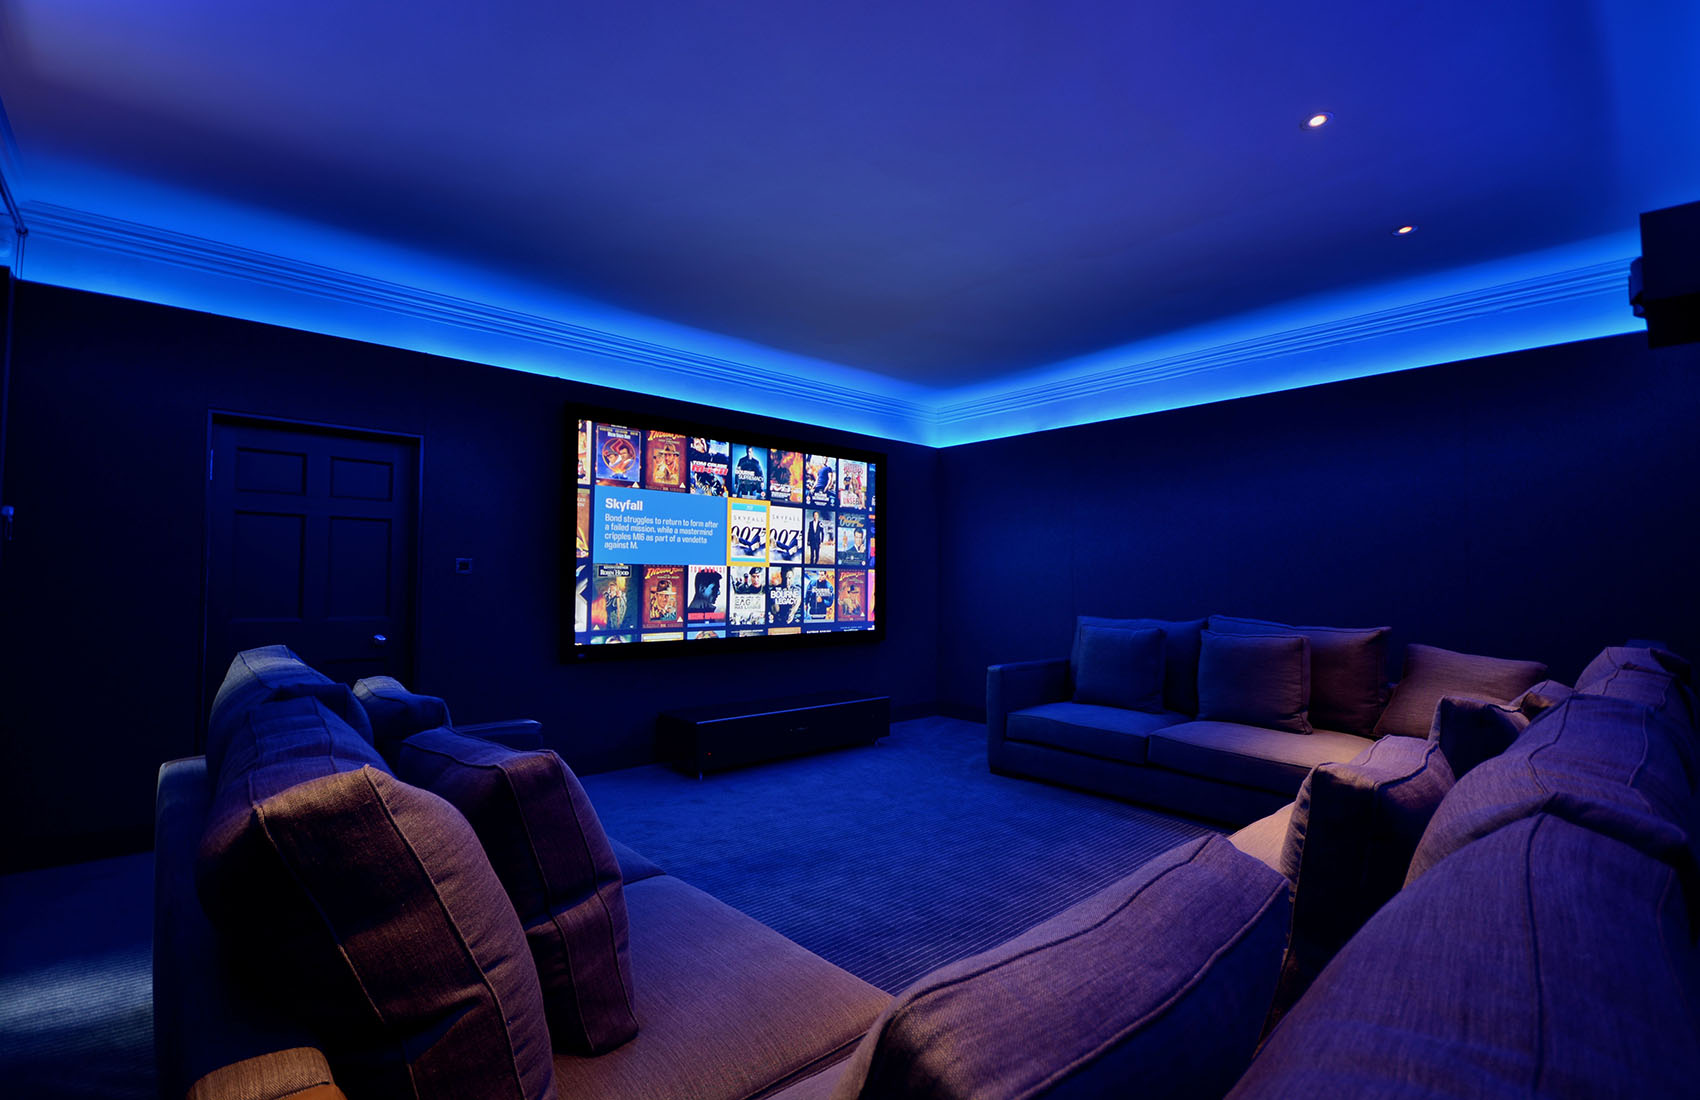 1000 Images About Cinema Rooms On Pinterest Cinema Room Home Cinema Room And Home Theater Rooms